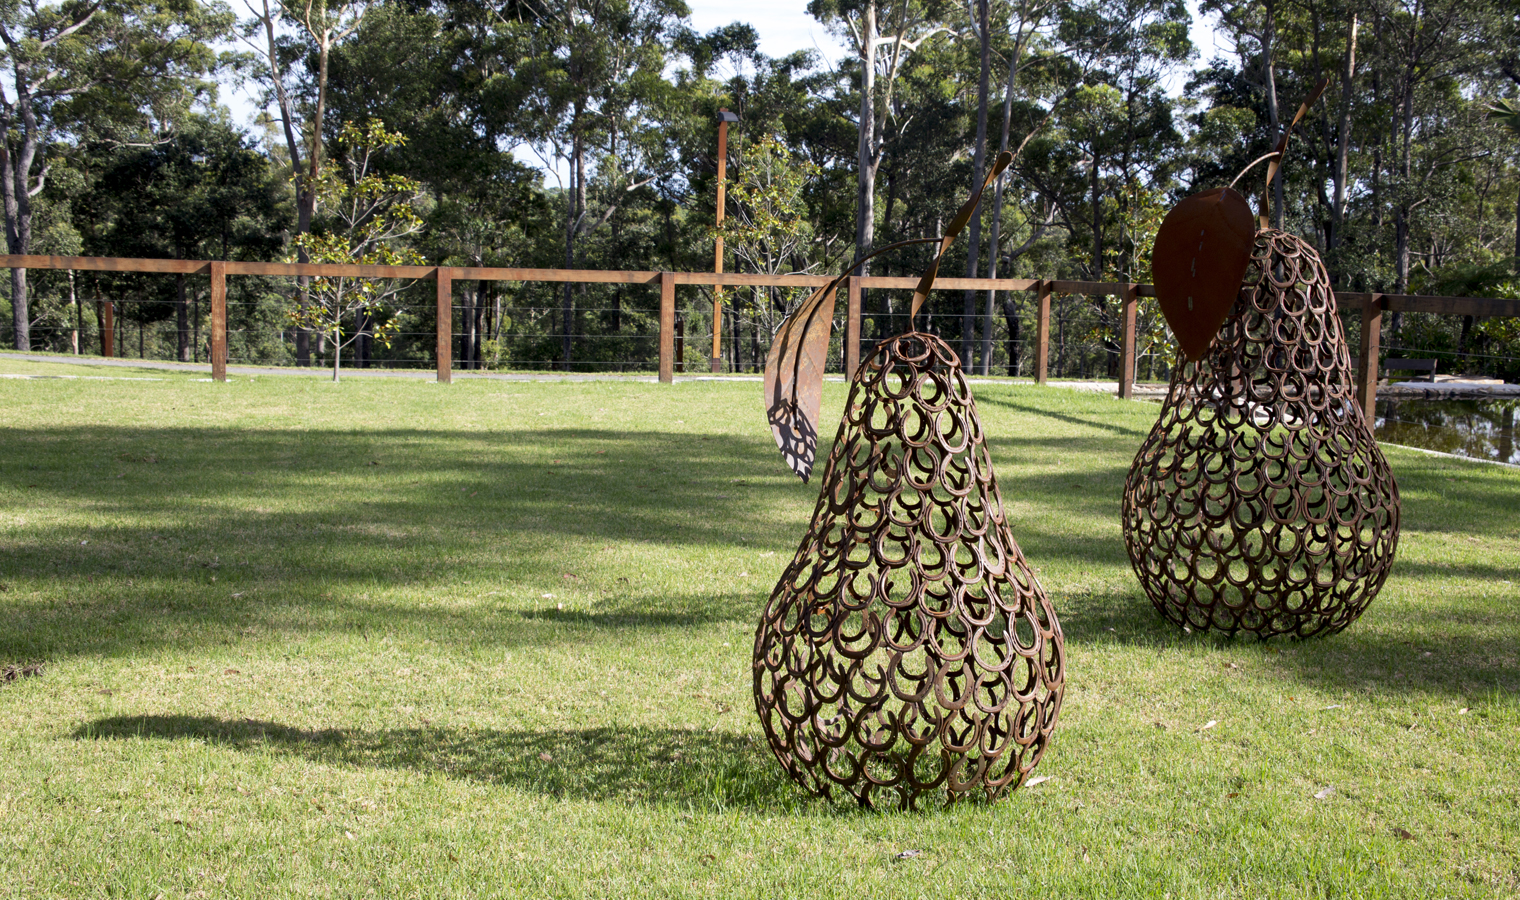 pears-Sculpture-website-template-size-1520x900